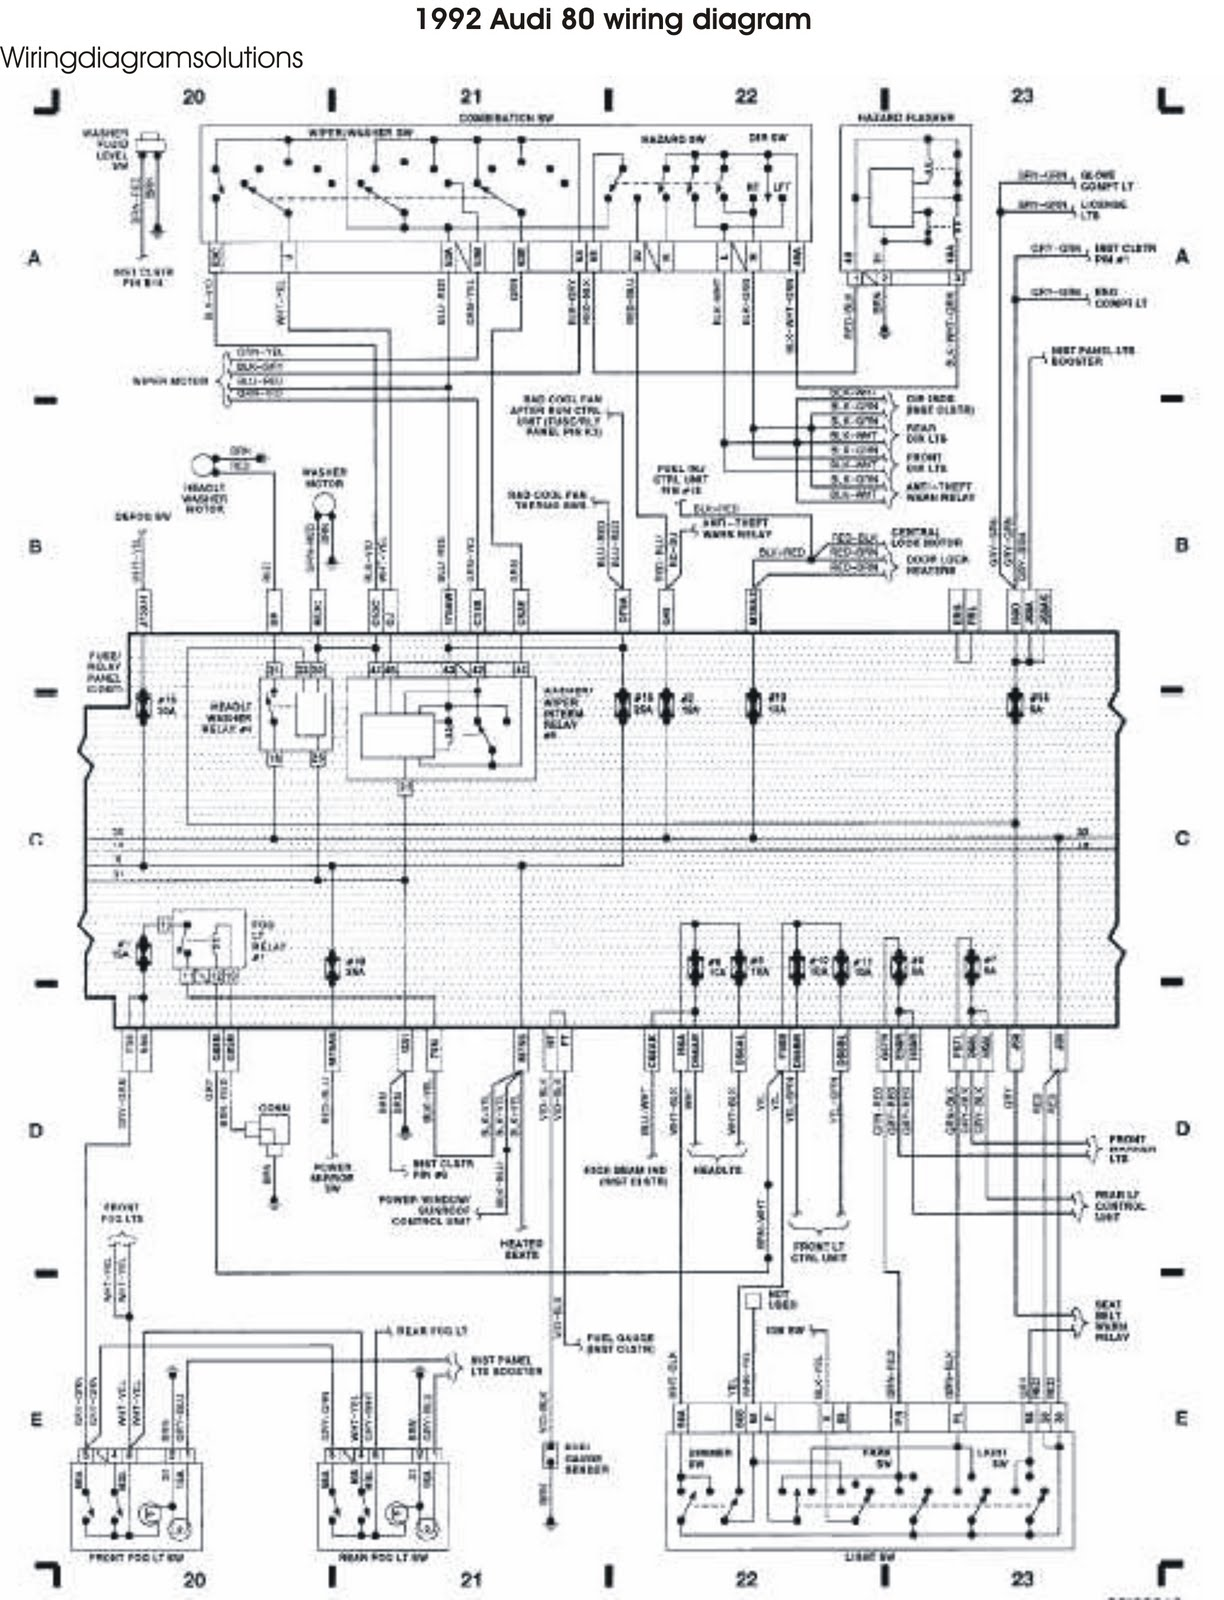 The 1992 Audi 80 Wiring Diagram